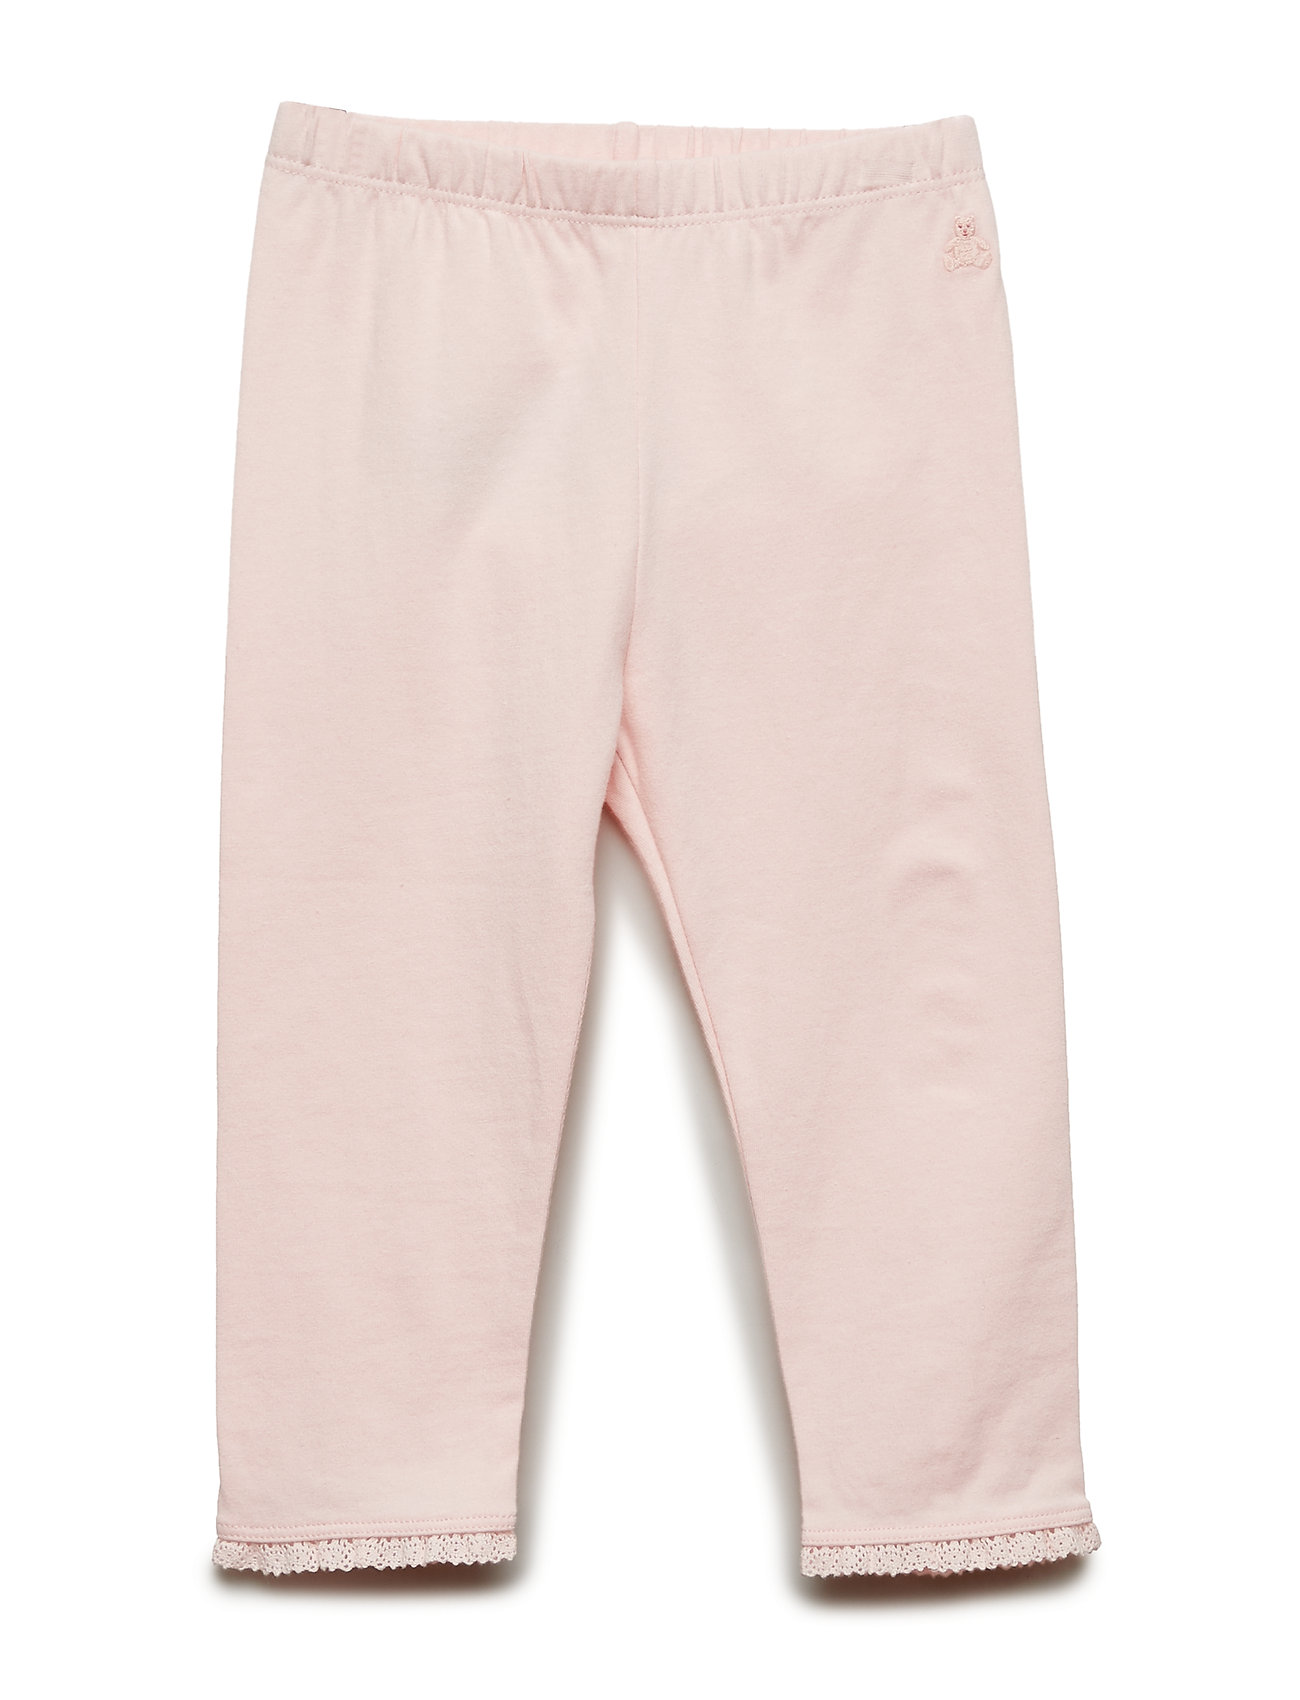 Image of Baby Lace-Trim Leggings Bukser Lyserød GAP (3176006727)